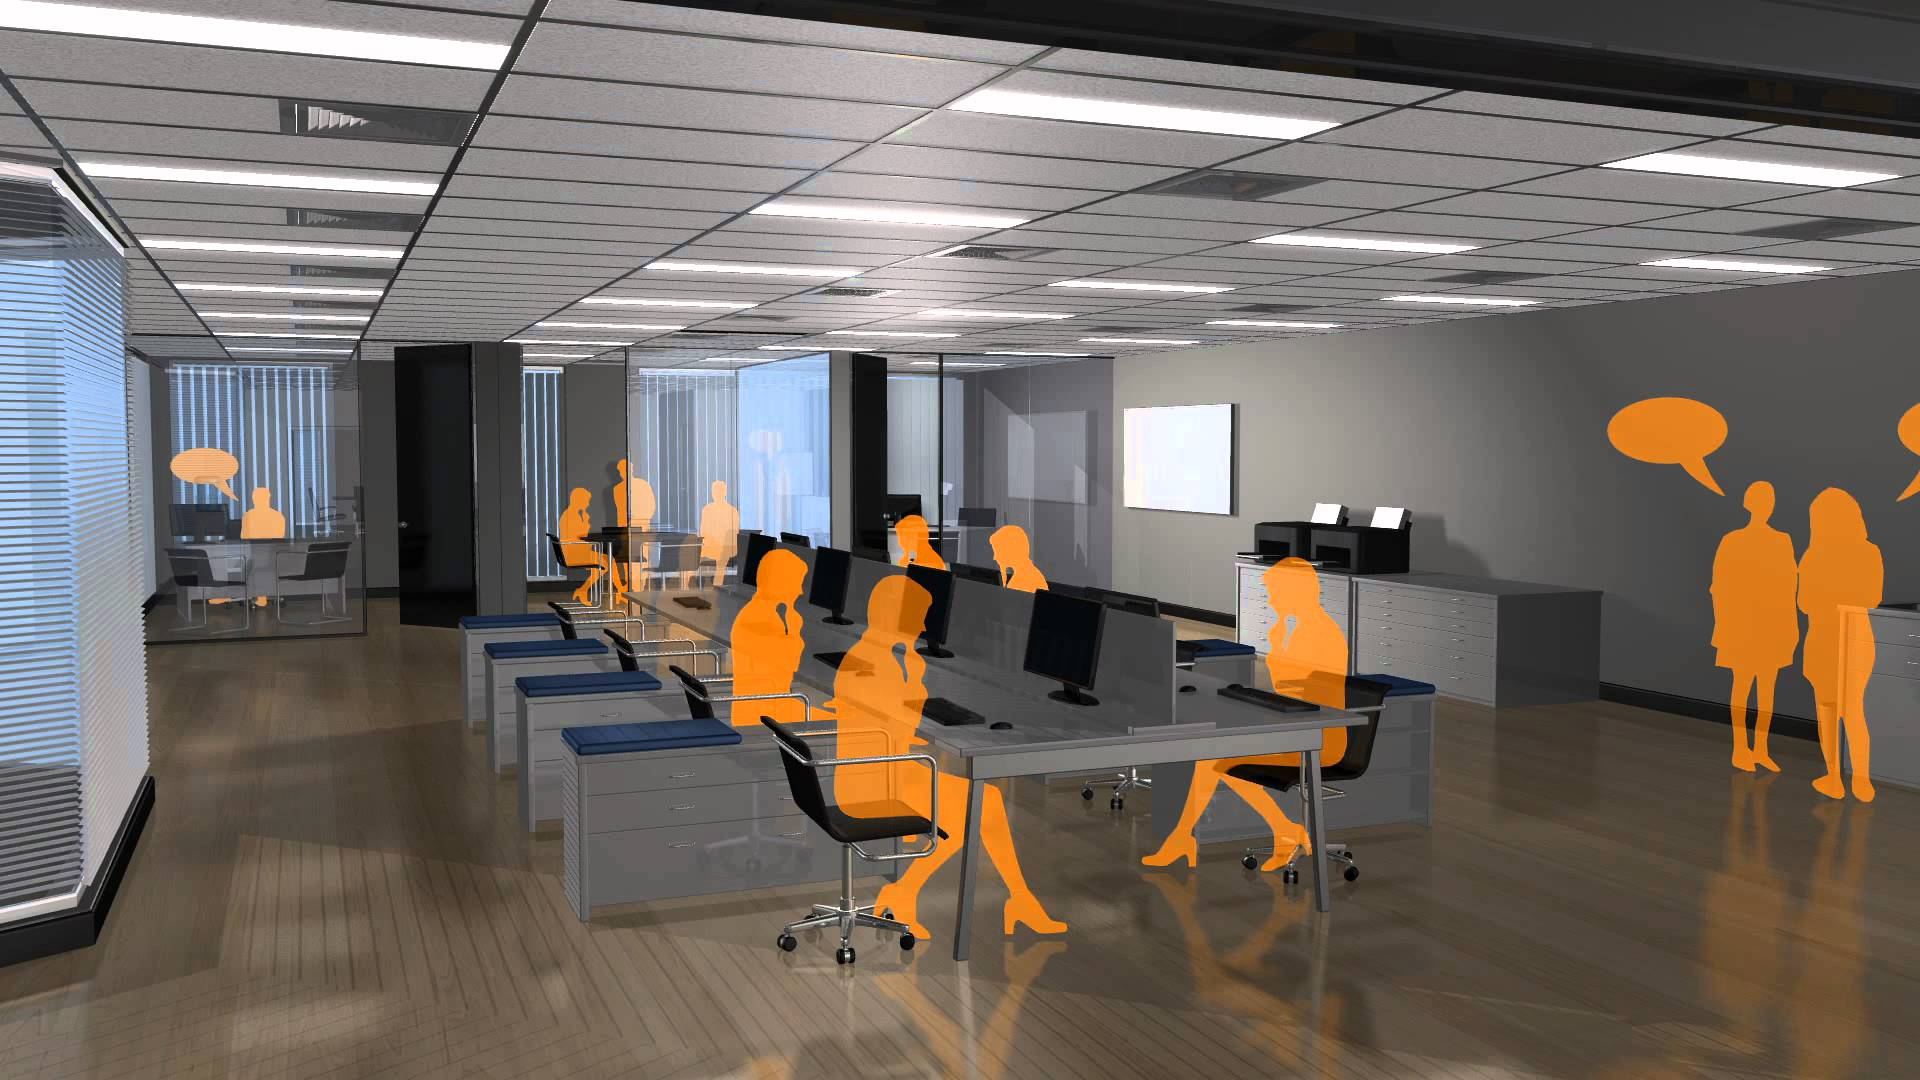 Sound Masking for Open Office Space